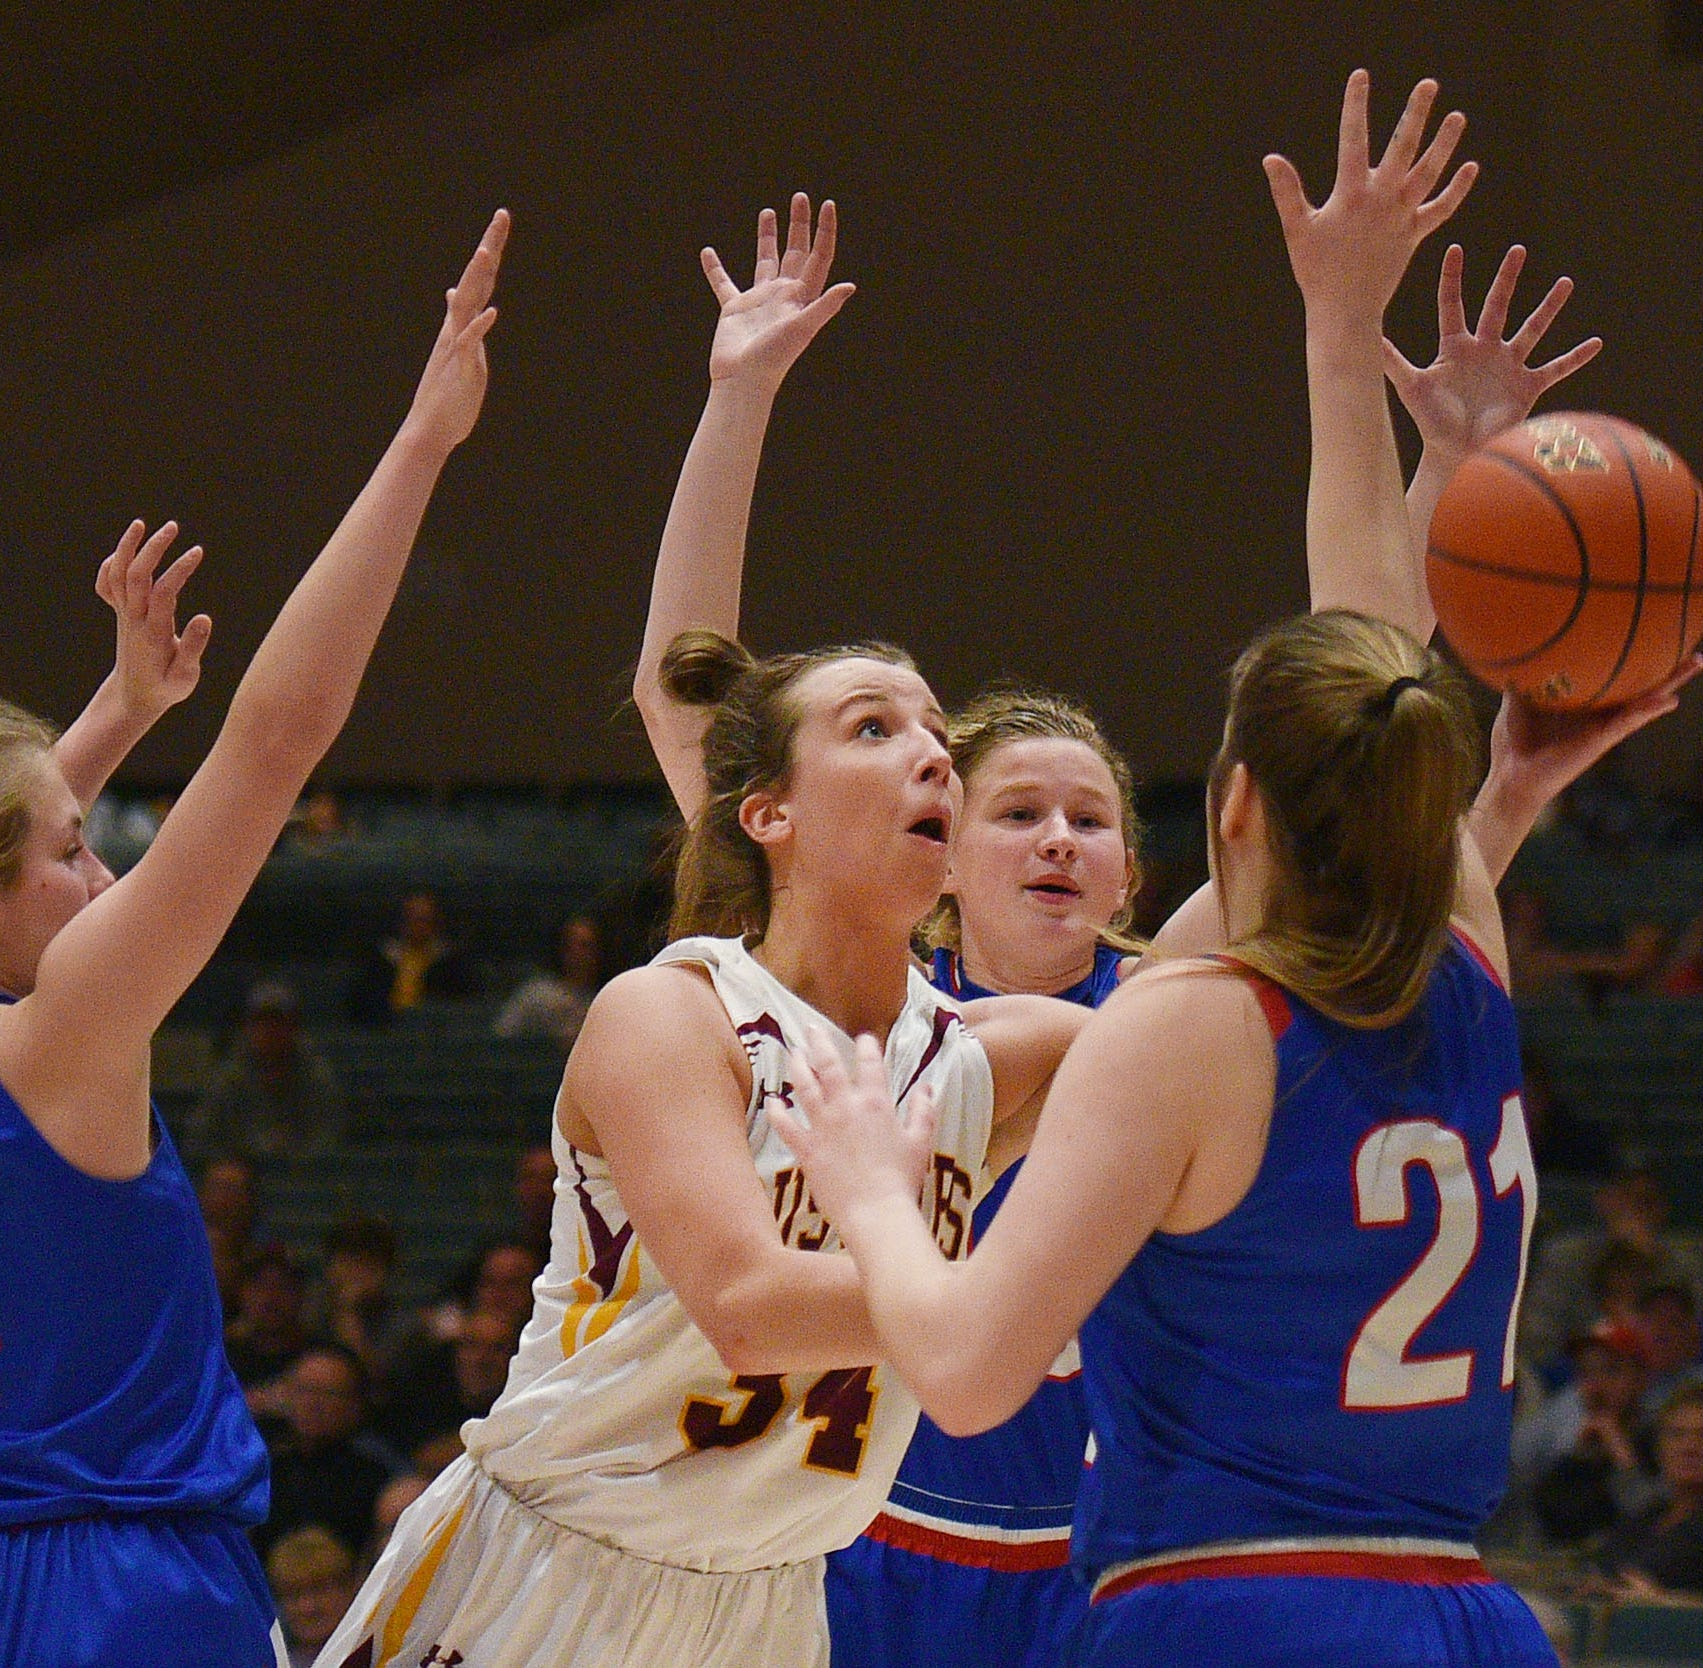 On Preps: Karly Gustafson leads No. 1 Ethan to dominating win over No. 3 Warner